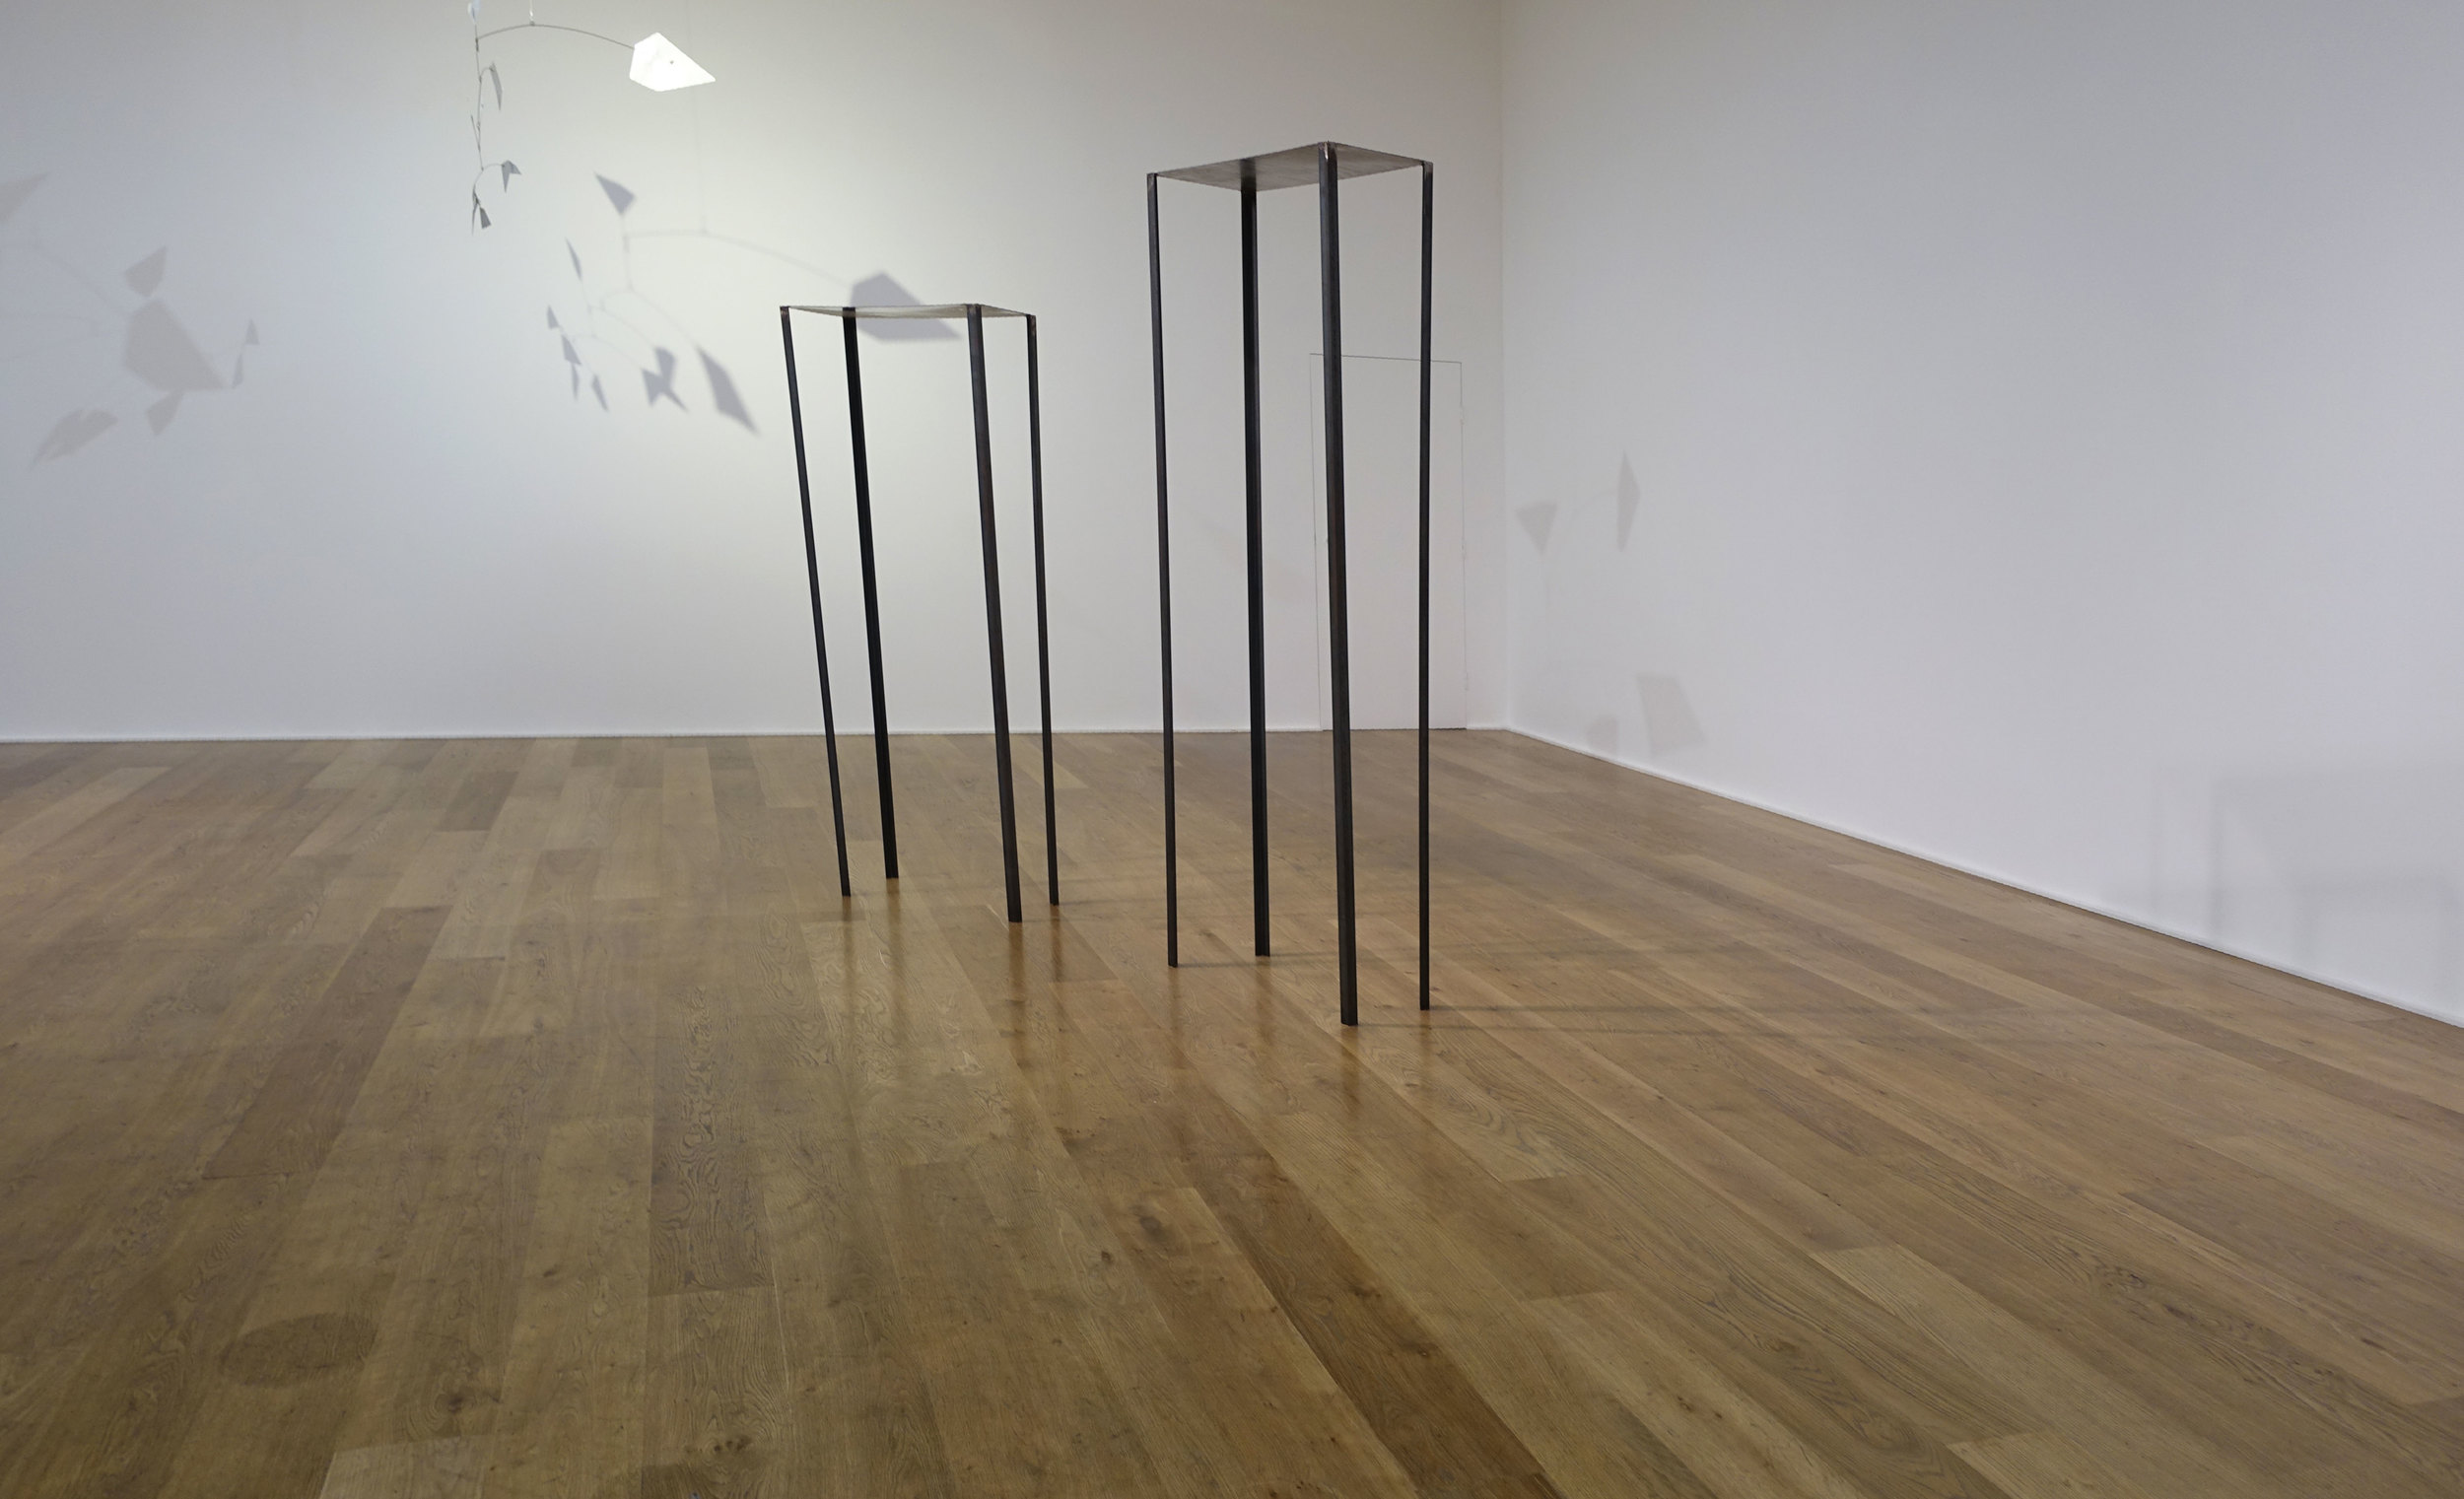 Calder and Bourgeois at Hauser & Wirth London